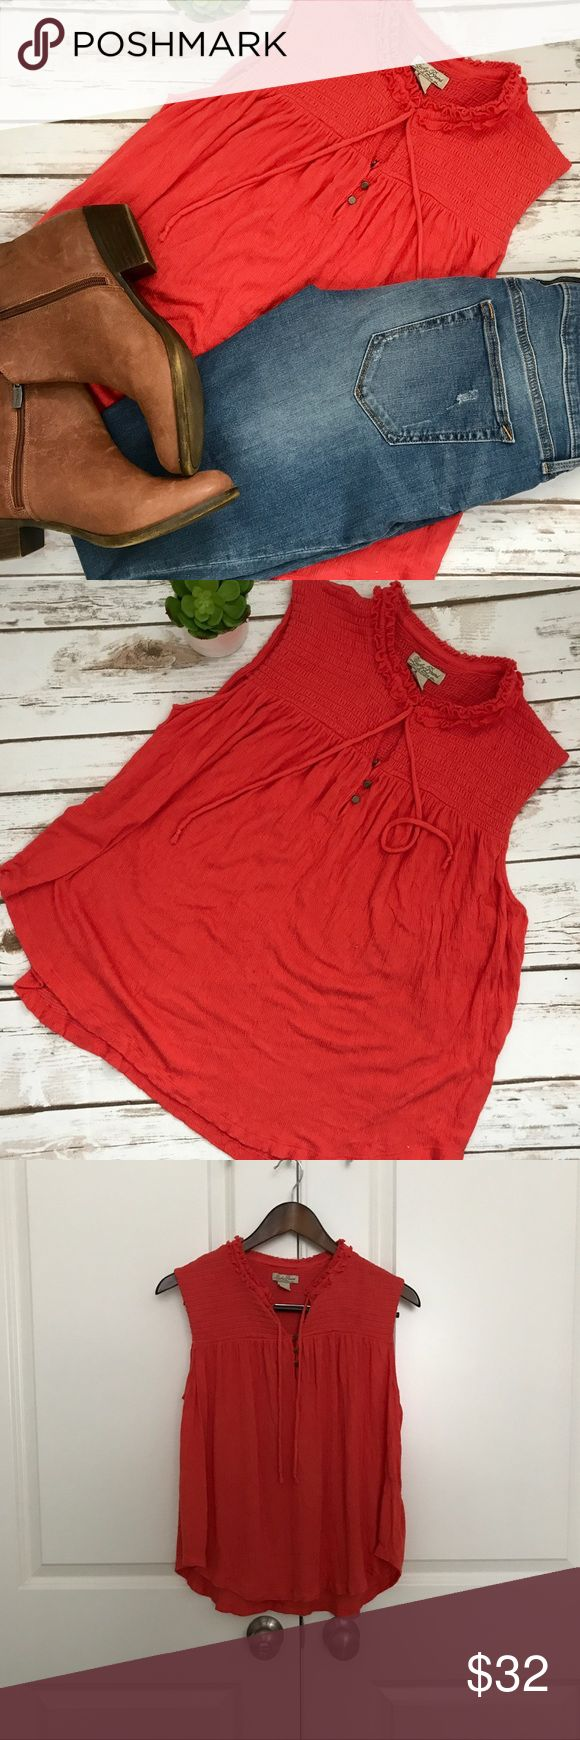 """Luck Brand Coral Gauze Sleevless Shirt Size Large Deep Coral/Red Lucky Brand sleeveless shirt in a lightweight gauze material.  Super comfortable  and flowy.  Looks great with jeans and boots  pair with your favorite cardigan.   Length=23"""" Bust=26"""" Lucky Brand Tops Tees - Short Sleeve"""